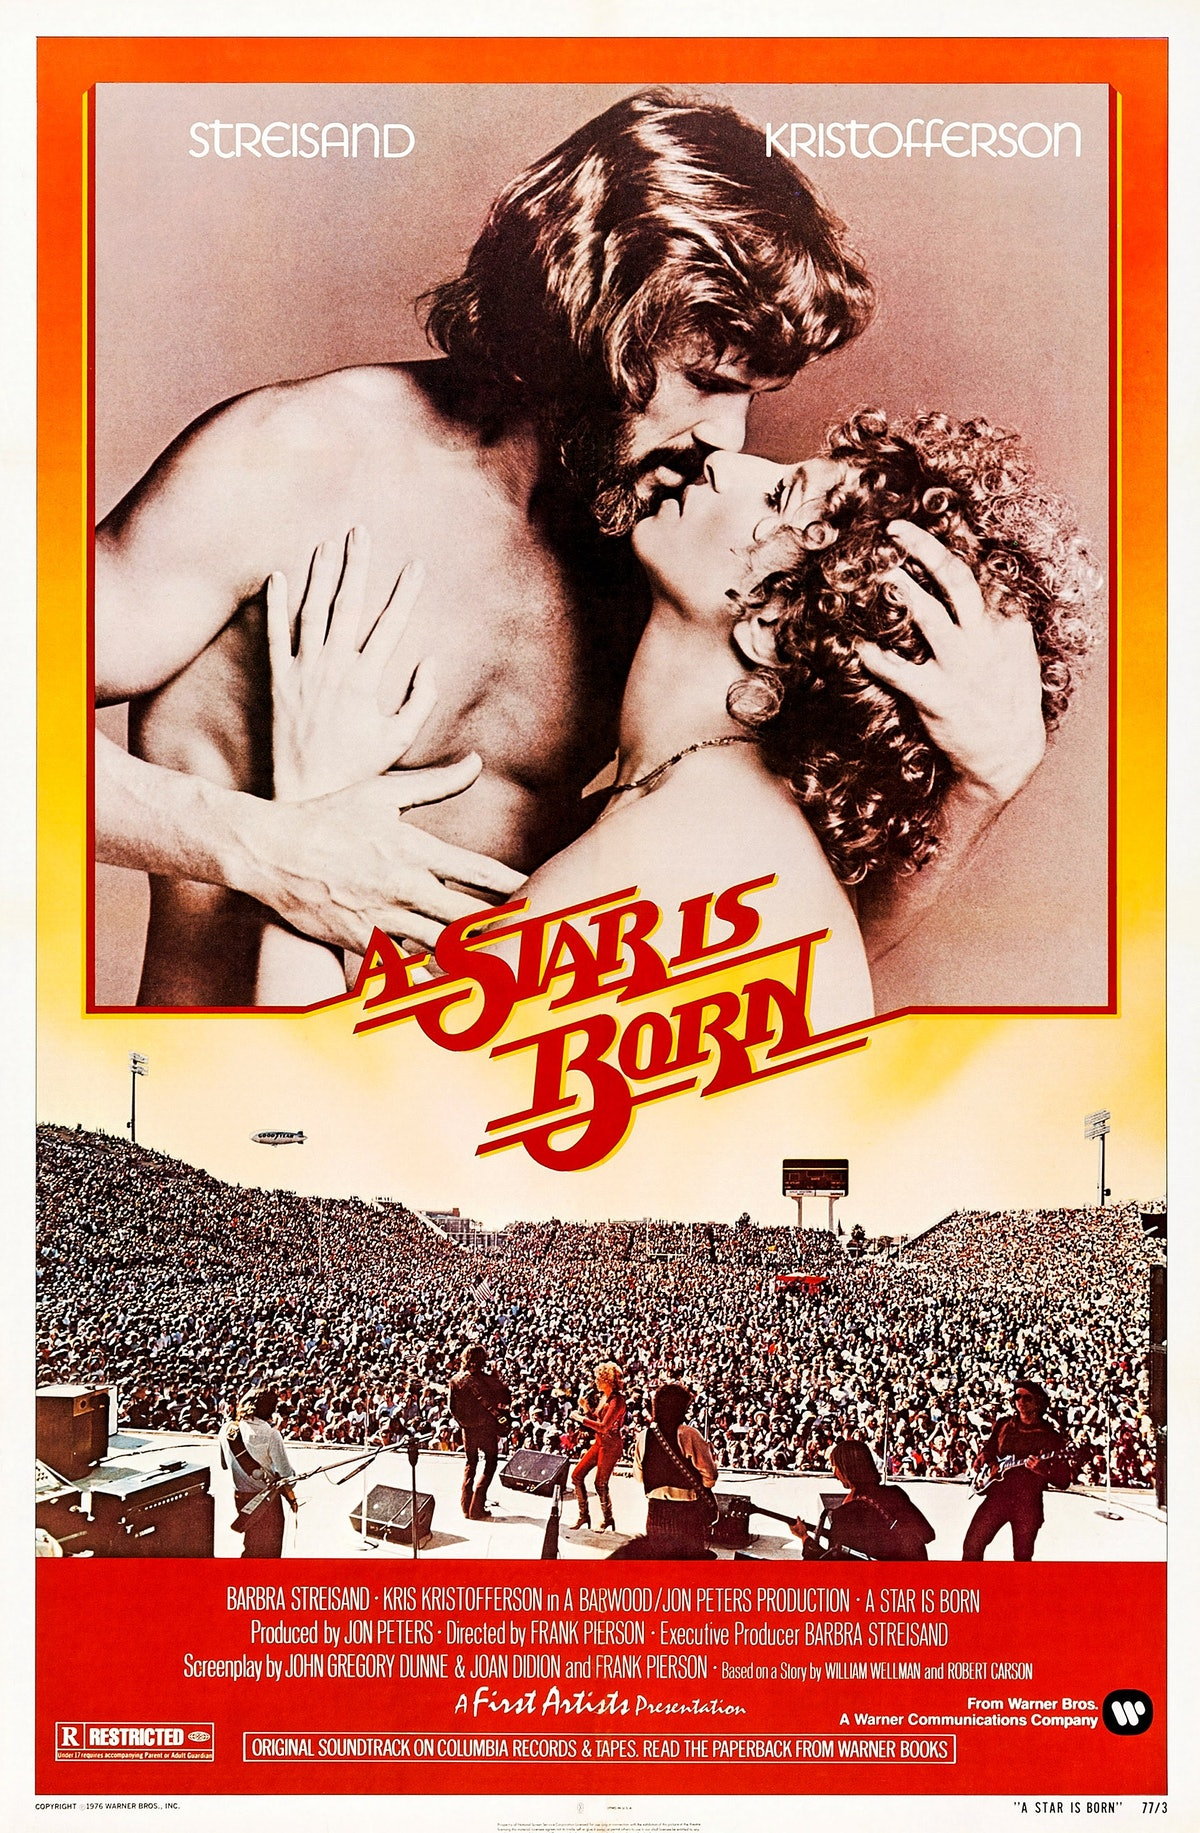 A Star Is Born, poster, Kris Kristofferson, Barbra Streisand, 1976. (Photo by LMPC via Getty Images)